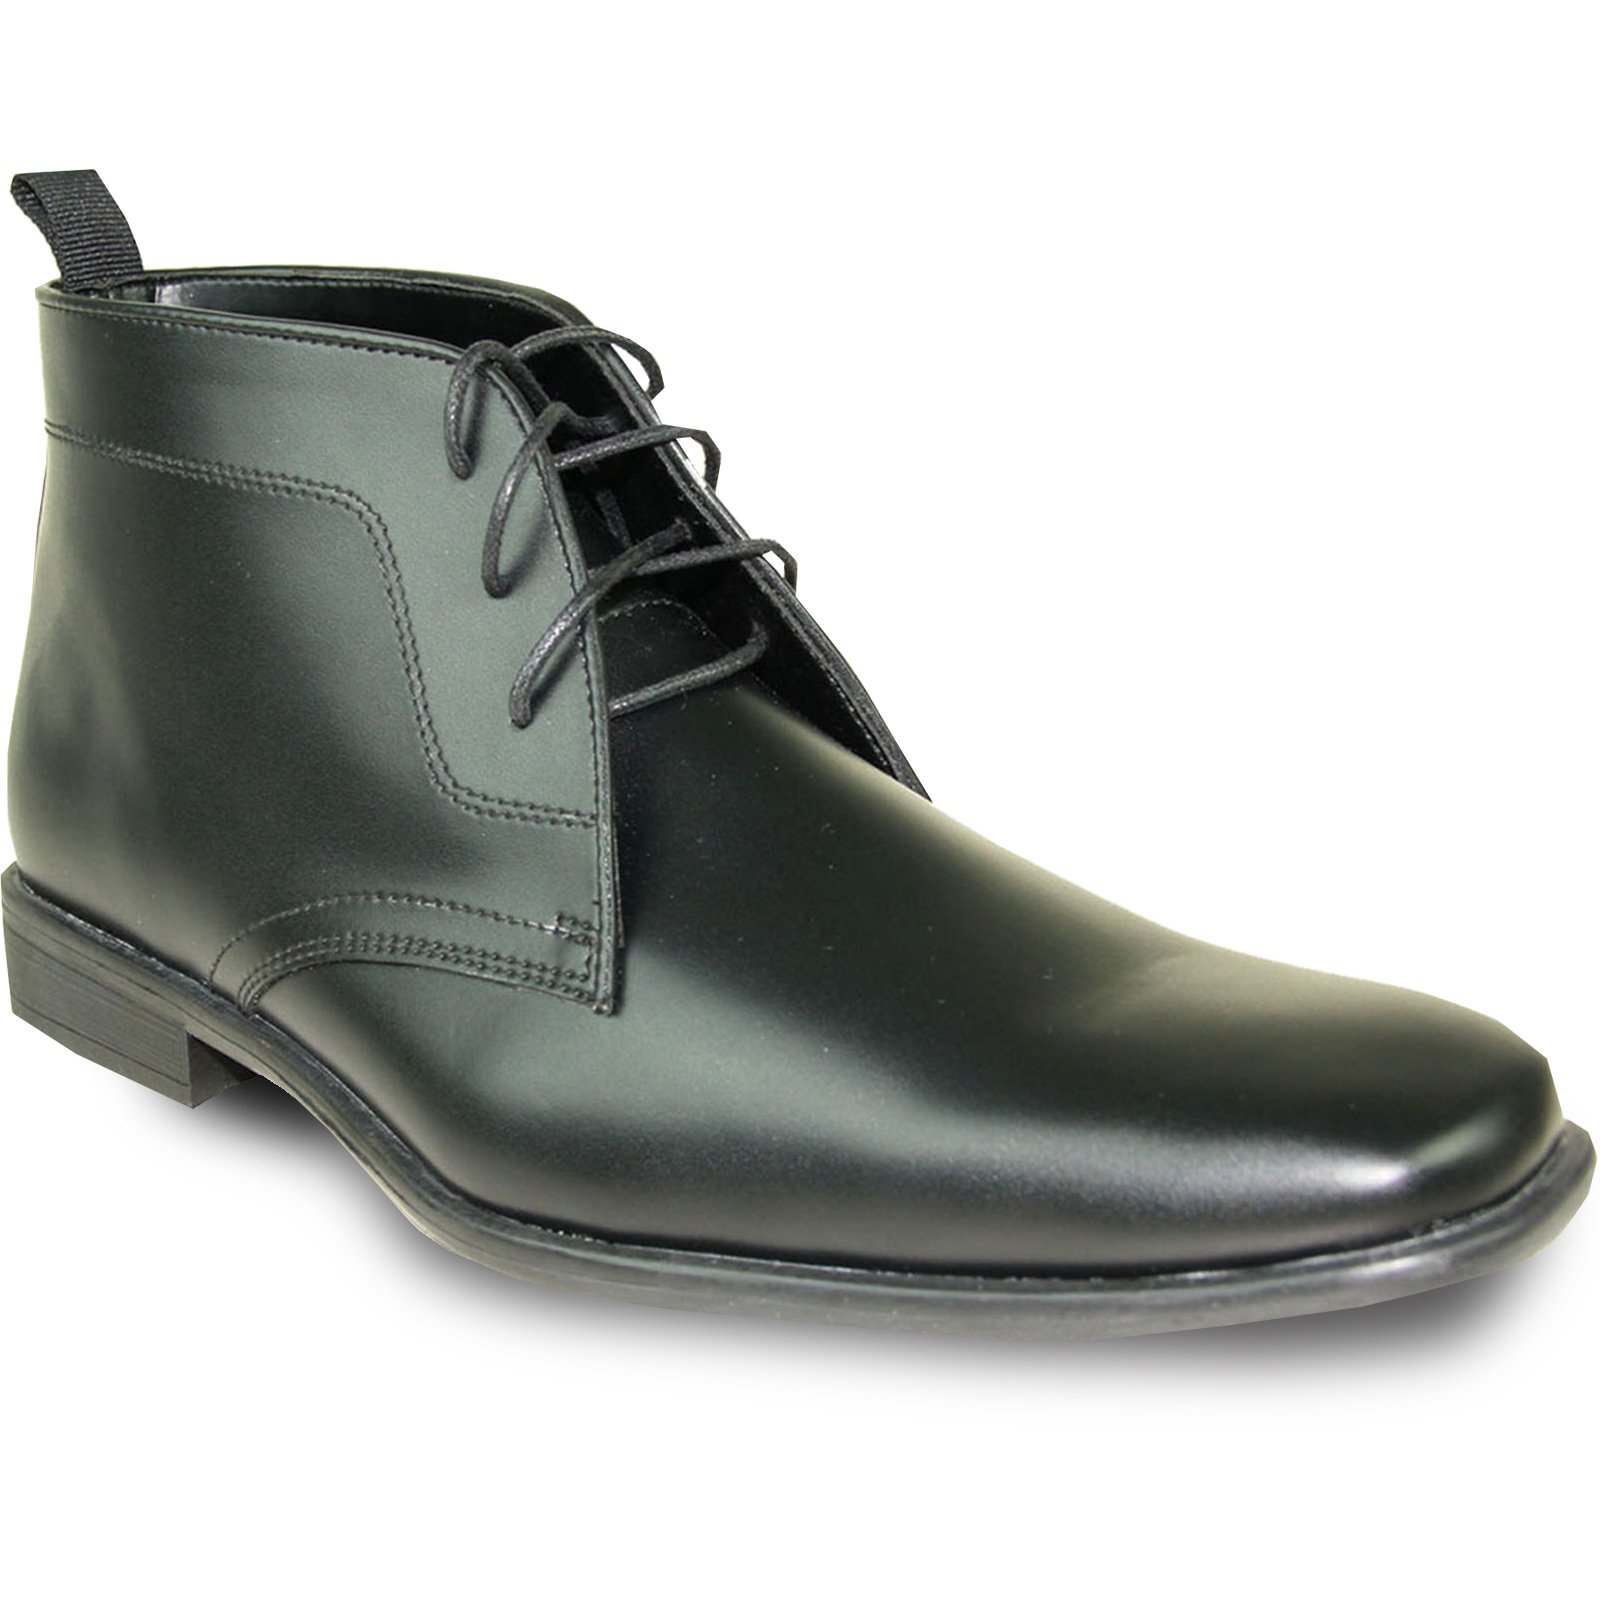 ALLURE MEN Dress Boot AL02 Fashion Tuxedo for Wedding, Prom and Formal Events with Wrinkle Free Material Black 20M